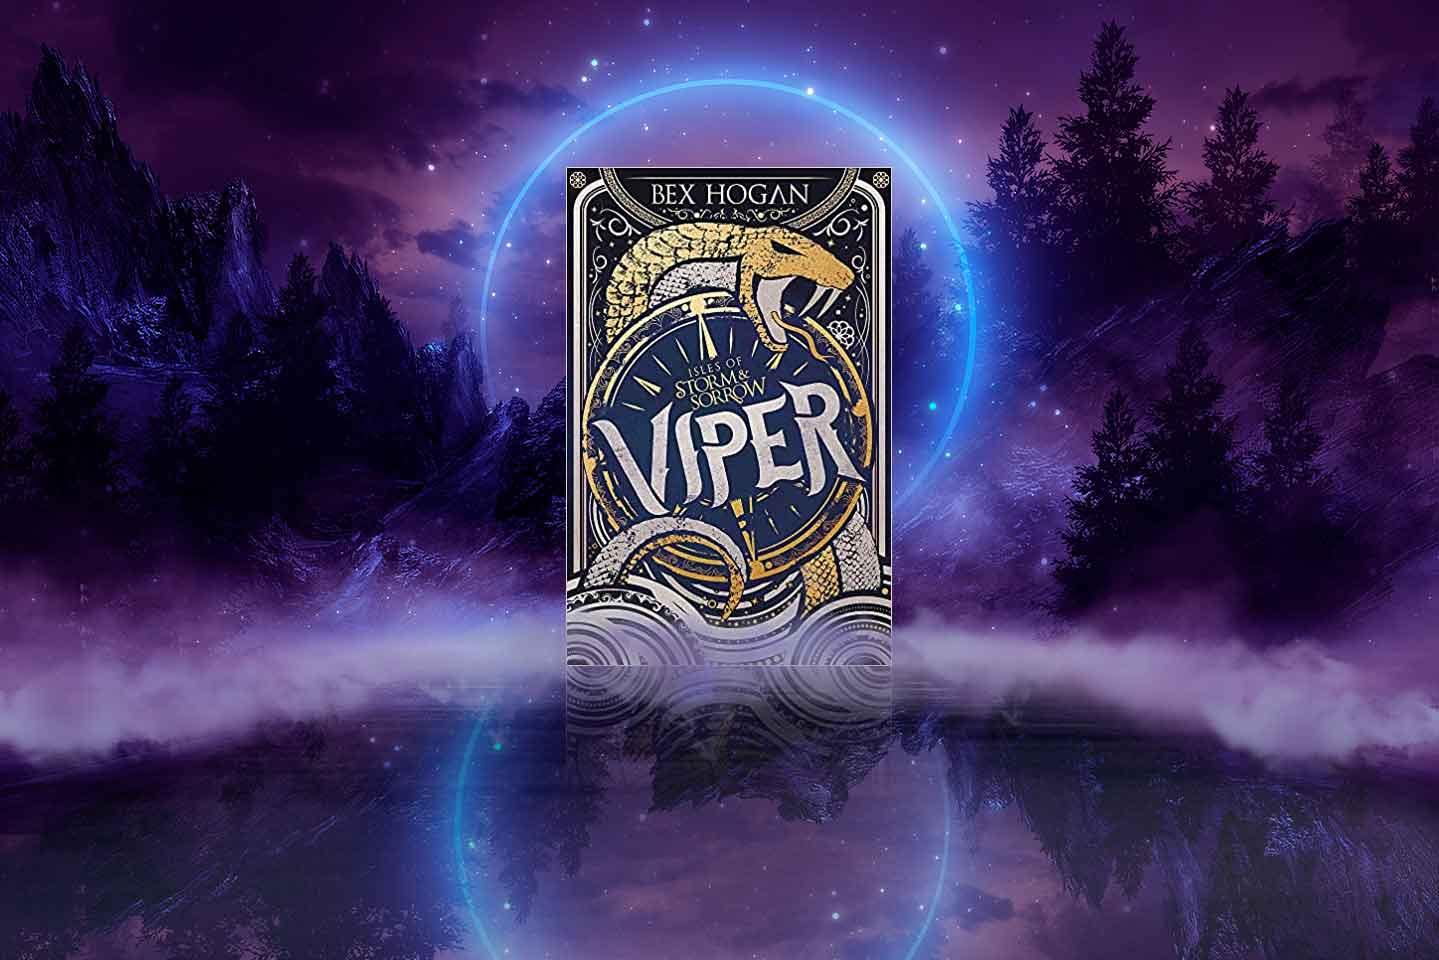 Viper by Bex Hogan | 5 Star Book Review - Jenniely